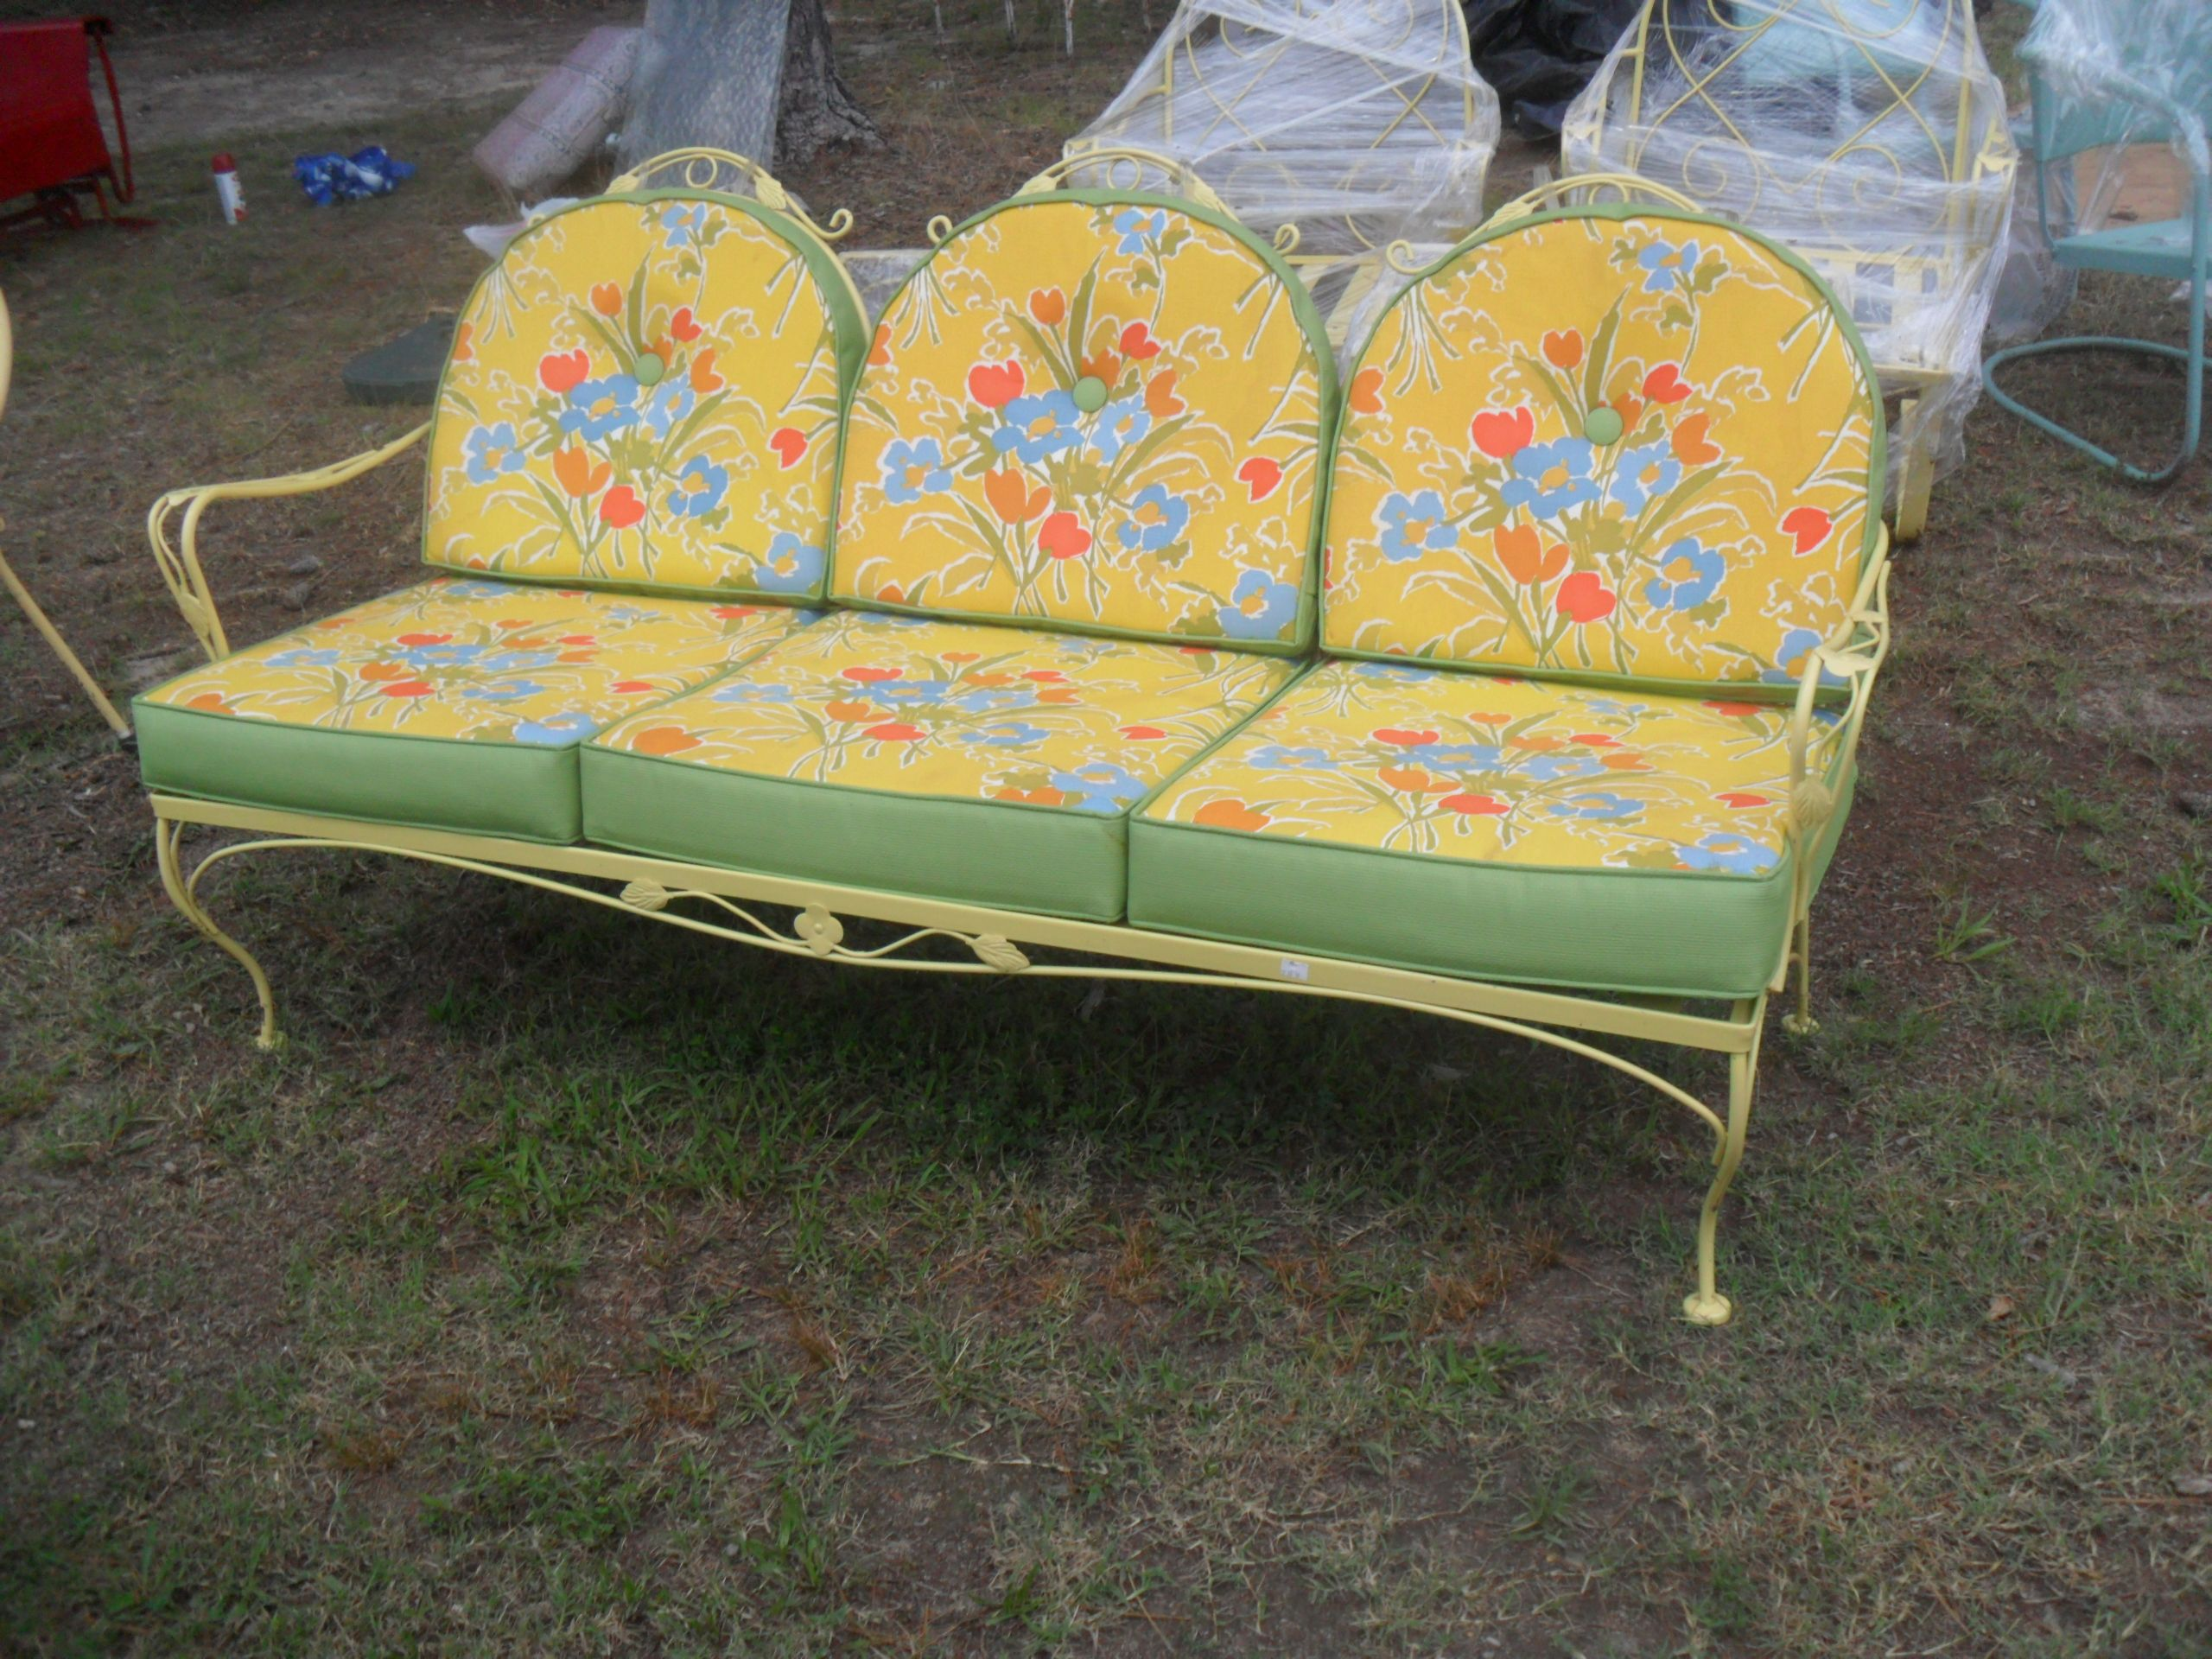 Early Ornate Fancy Vintage Metal Settee With Cushions Home Decor